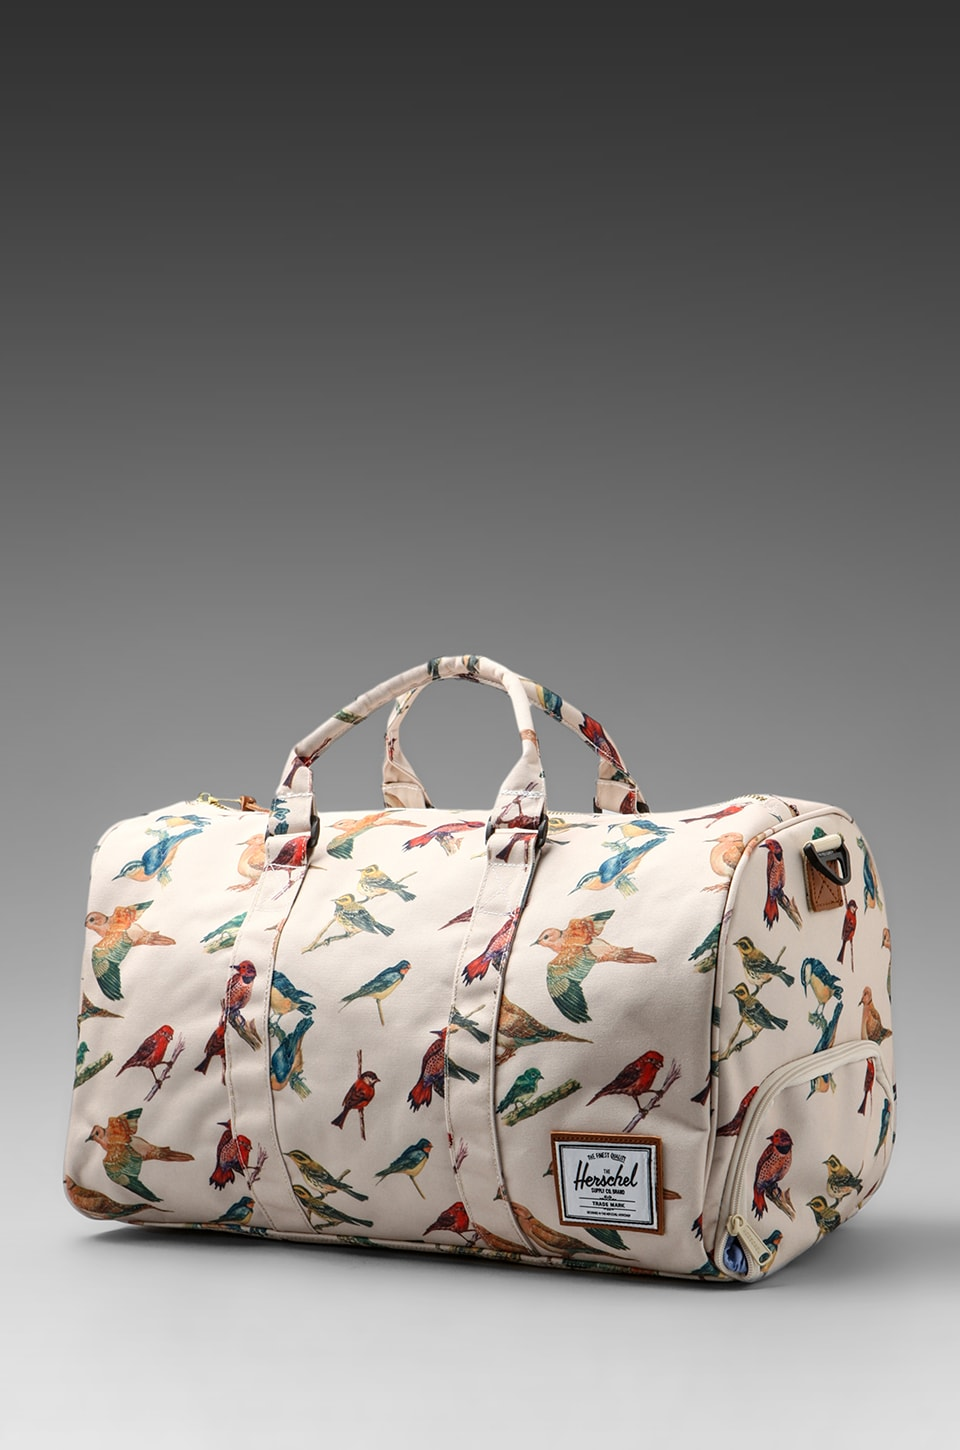 Herschel Supply Co. Bad Hills Workshop Novel Duffle in Watercolored Bird Print